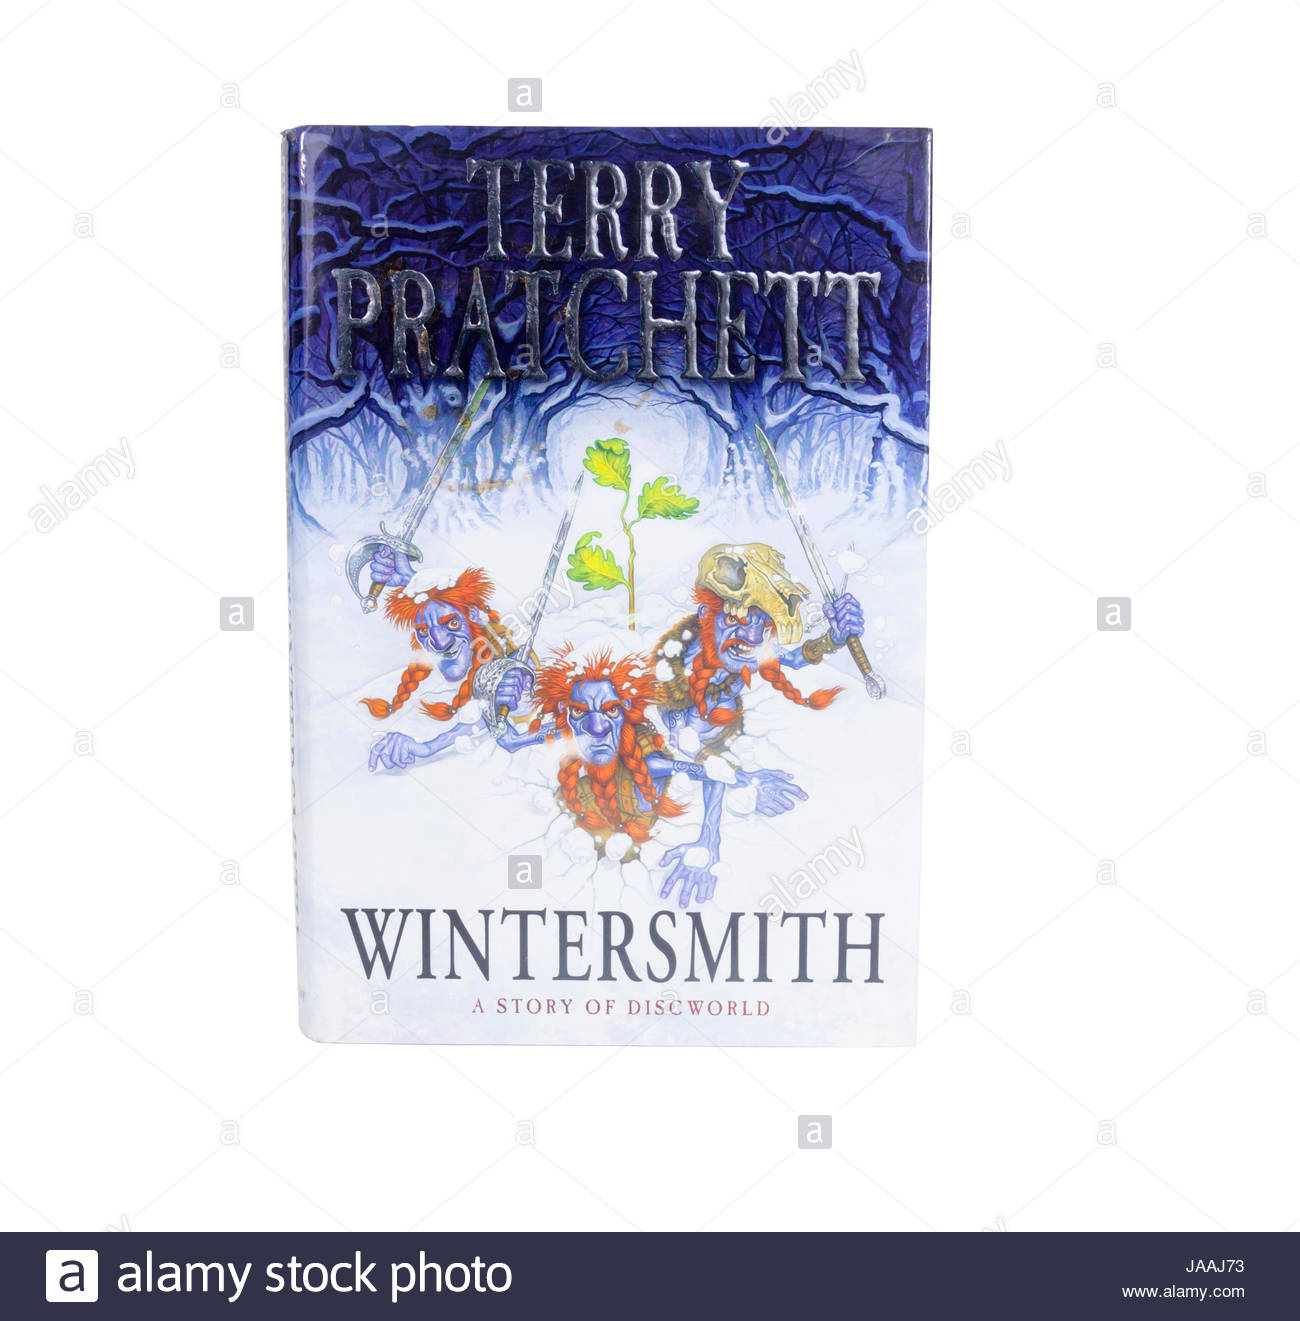 Hardback book with dustjacket of 'Wintersmith', the fantasy genre  book by Terry Pratchett in his Discworld - Stock Image